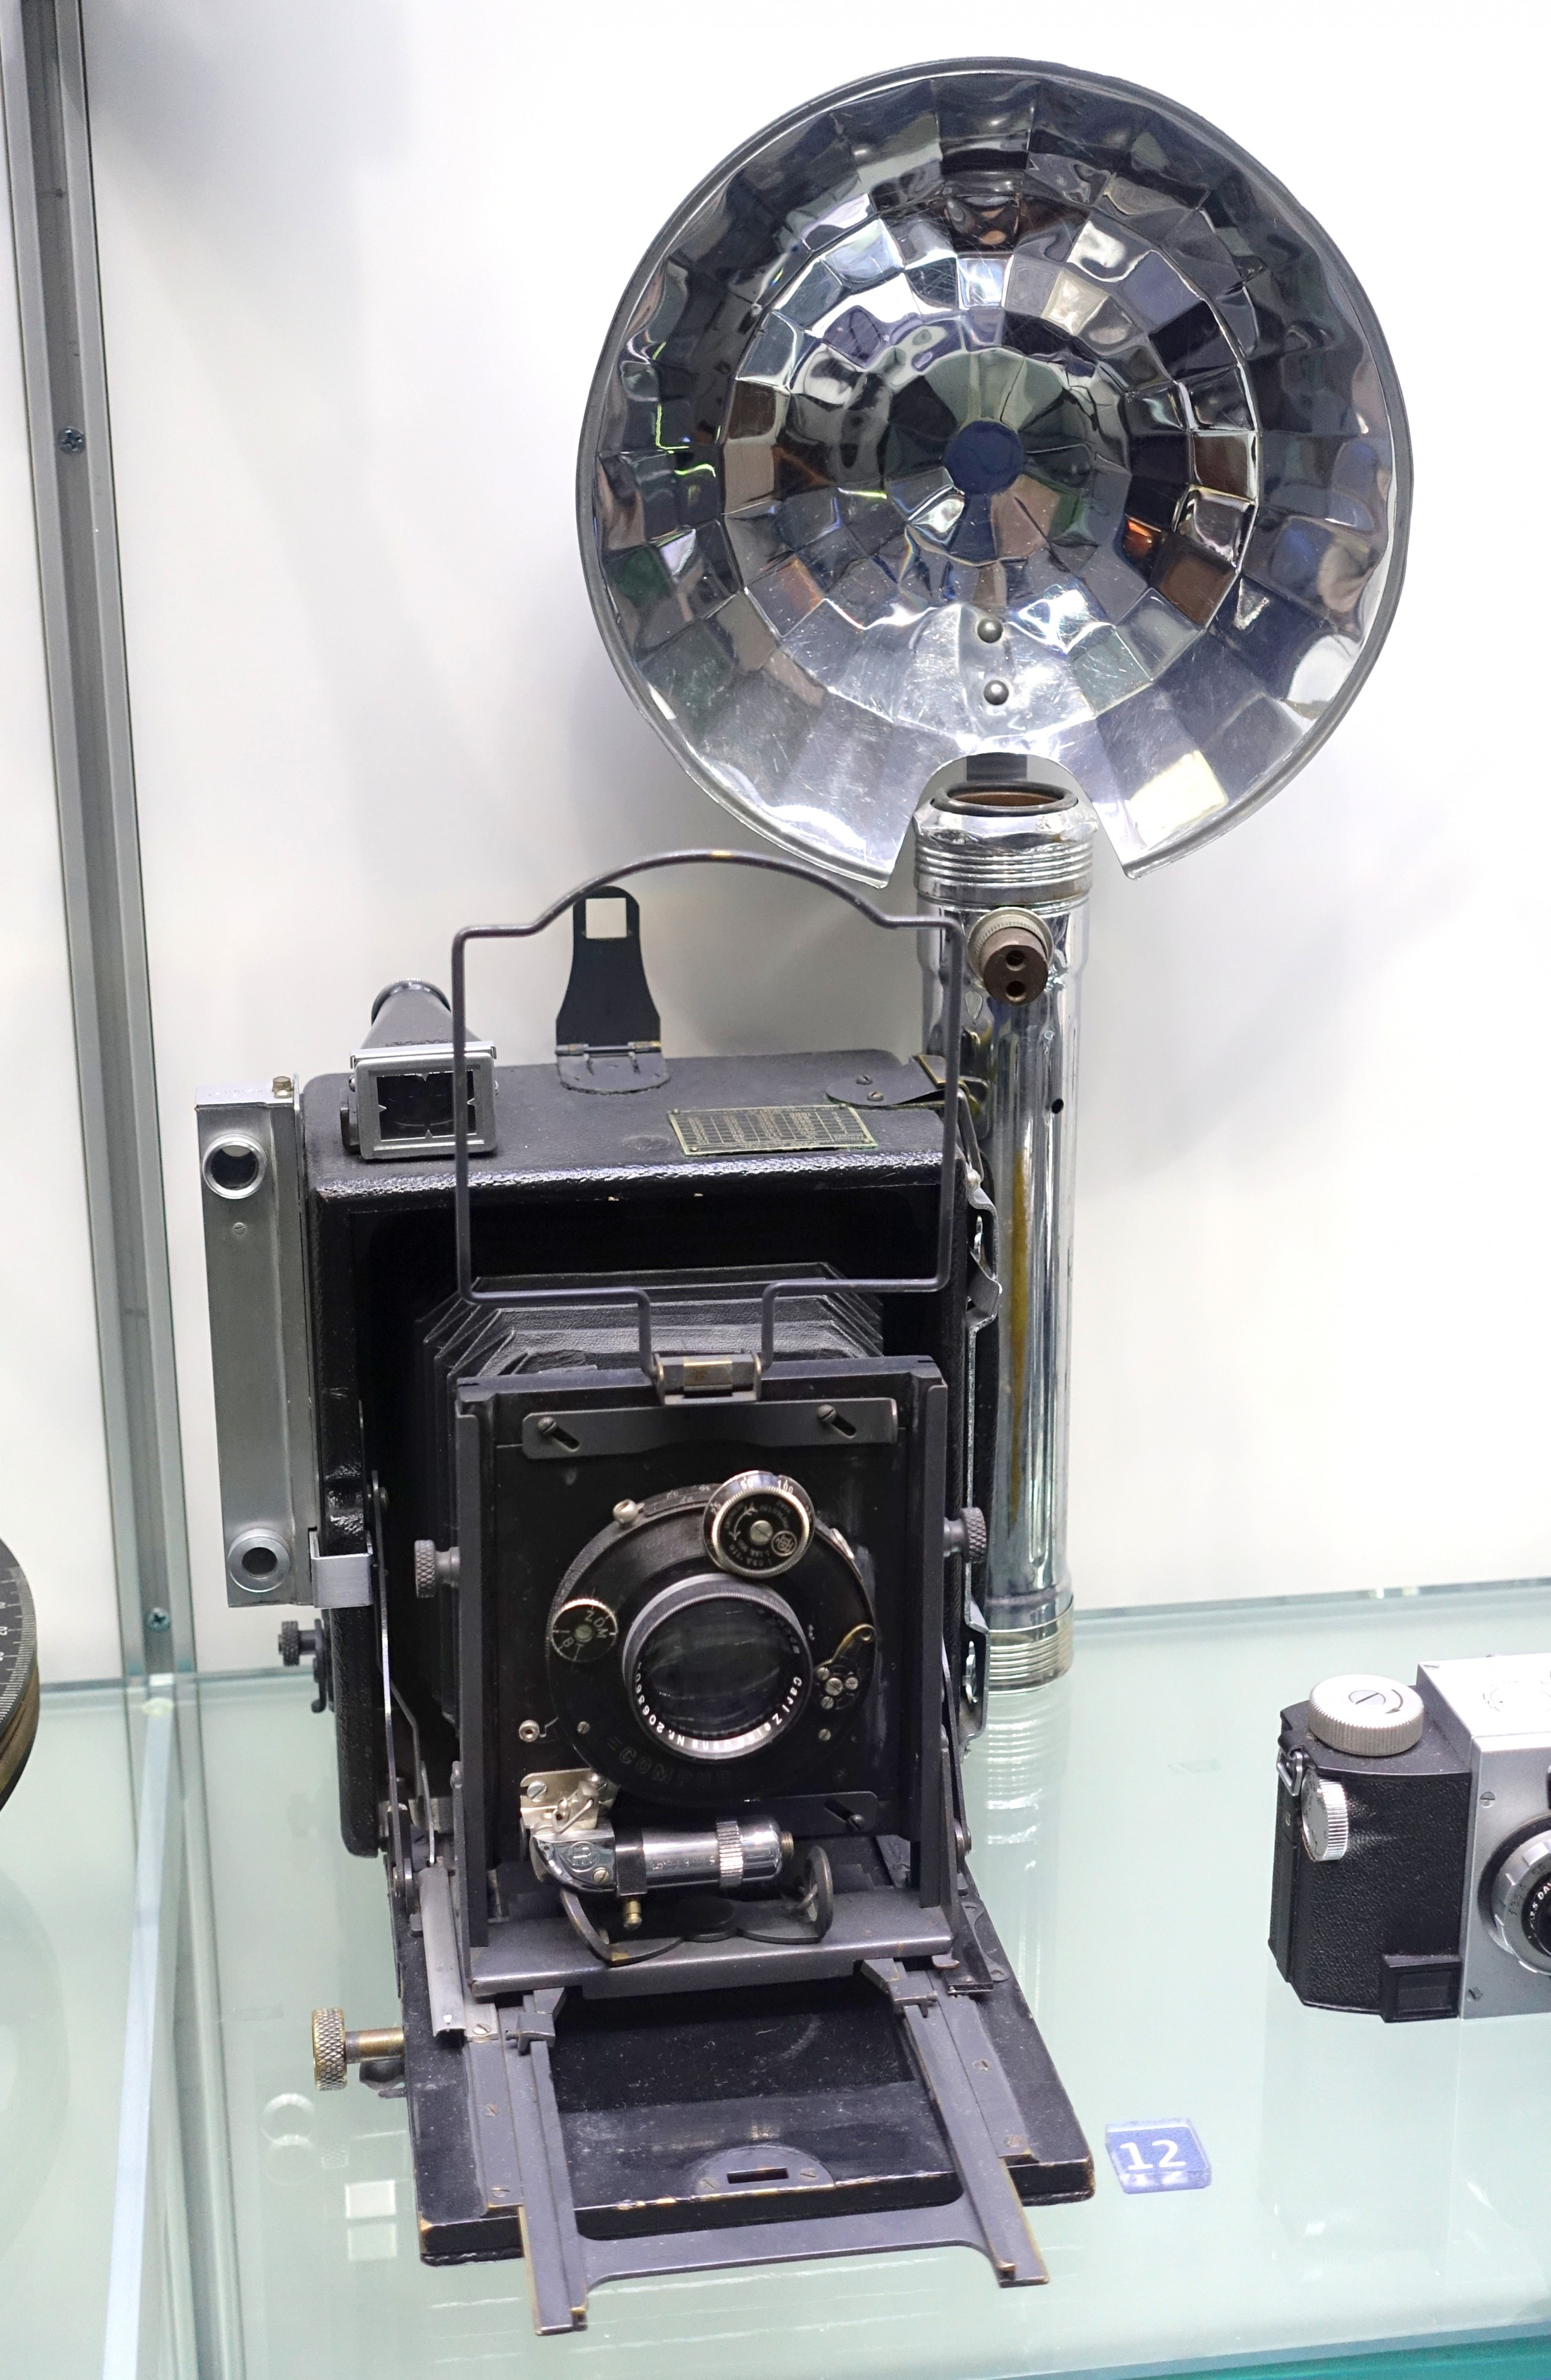 Compur Press Camera, c. 1940 - Museum of Science and Industry (Chicago) - DSC06420